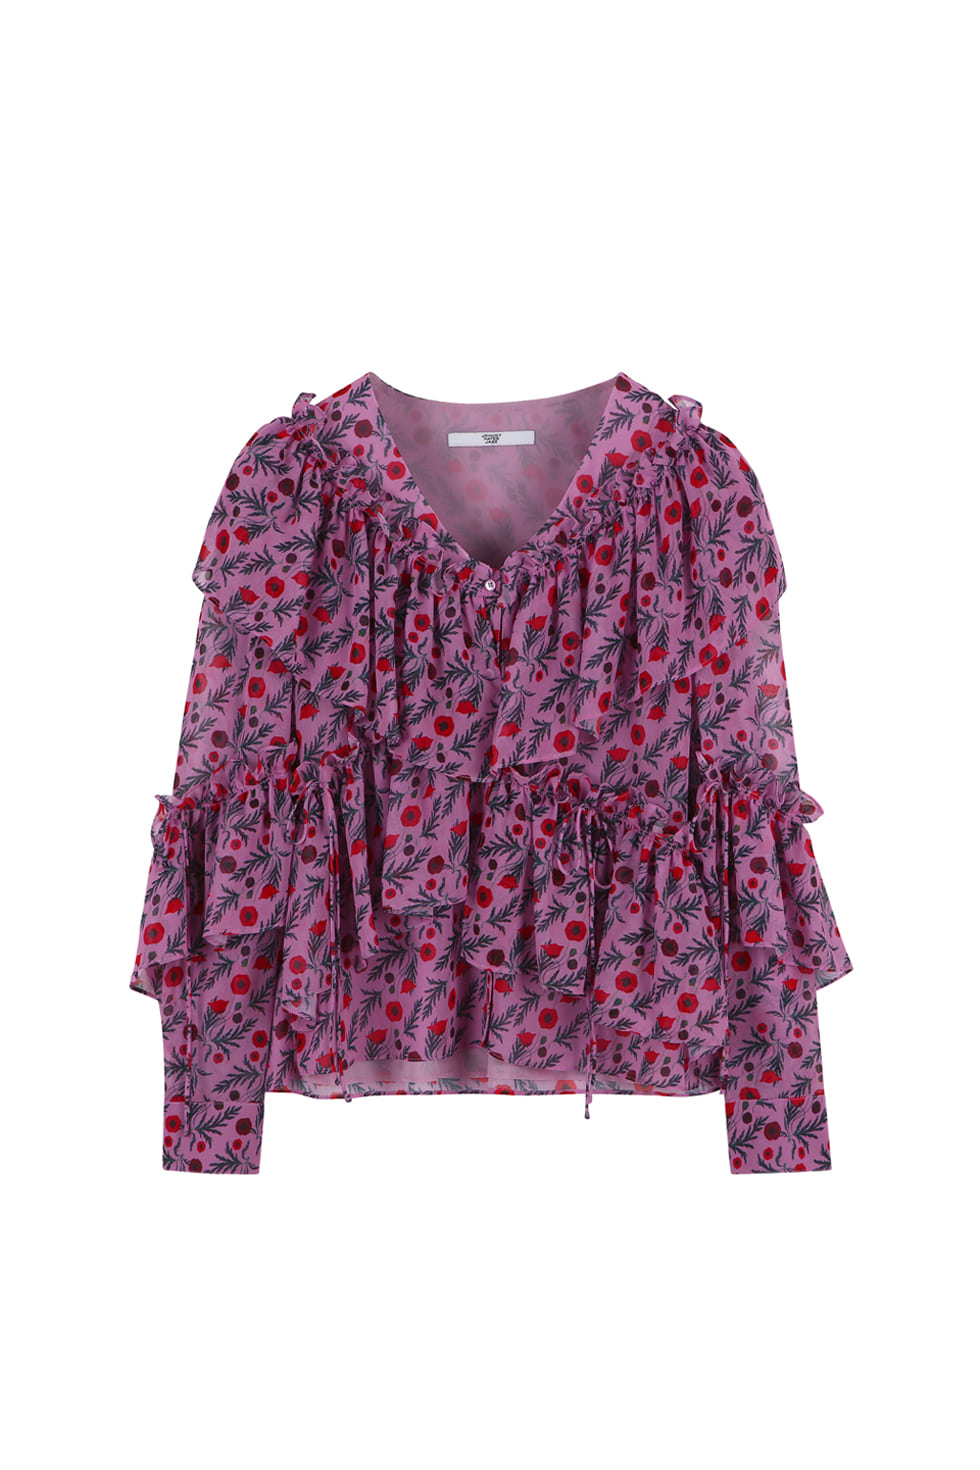 FLORAL RUFFLE BLOUSE - PINK